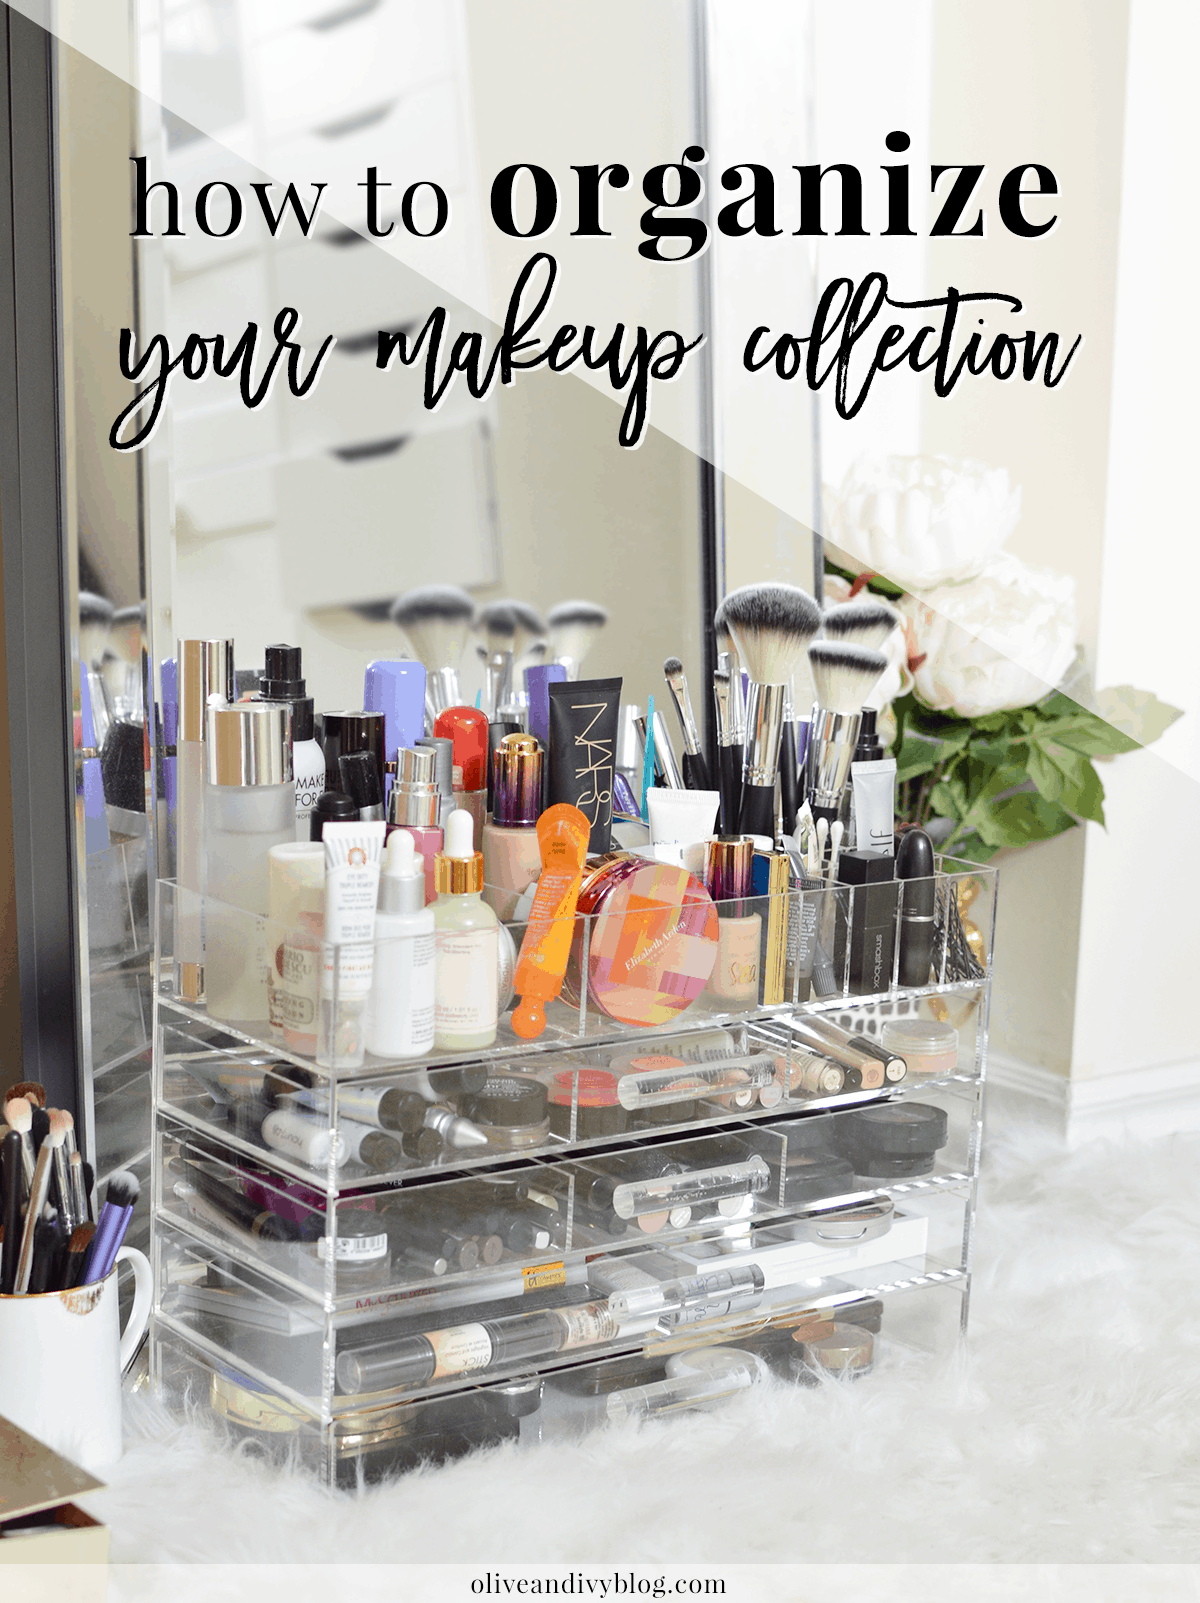 Way To Organize Your Makeup Collection Oliveandivyblog